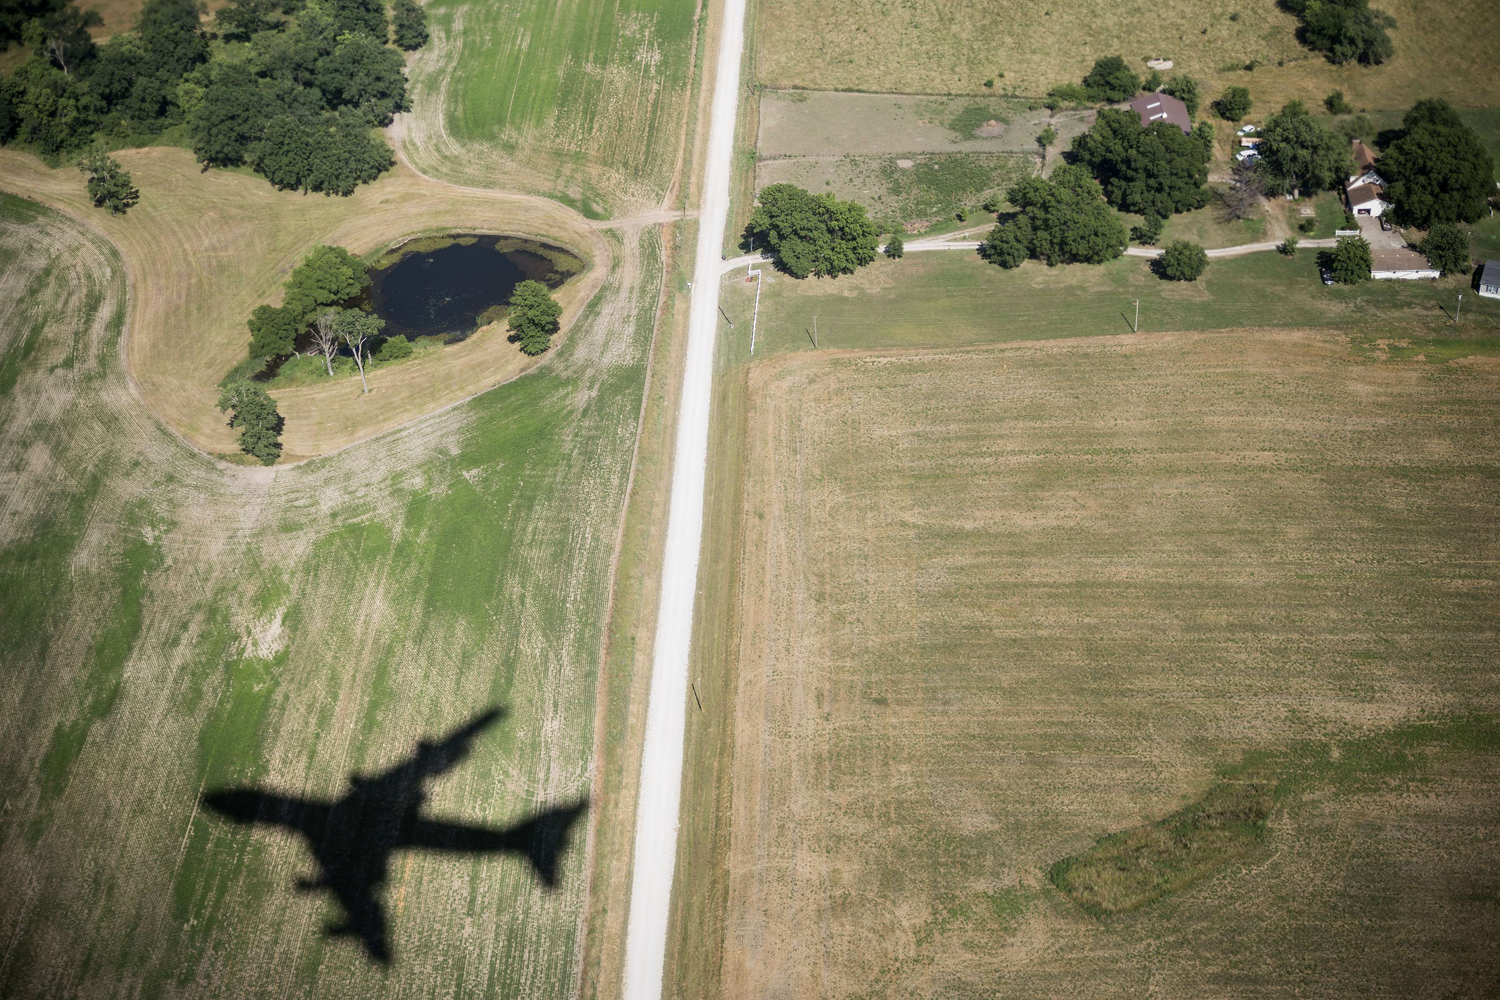 July 24, 2013. Air Force One's shadow is seen while flying over Knob Noster to Whiteman Air Force Base in Missouri.